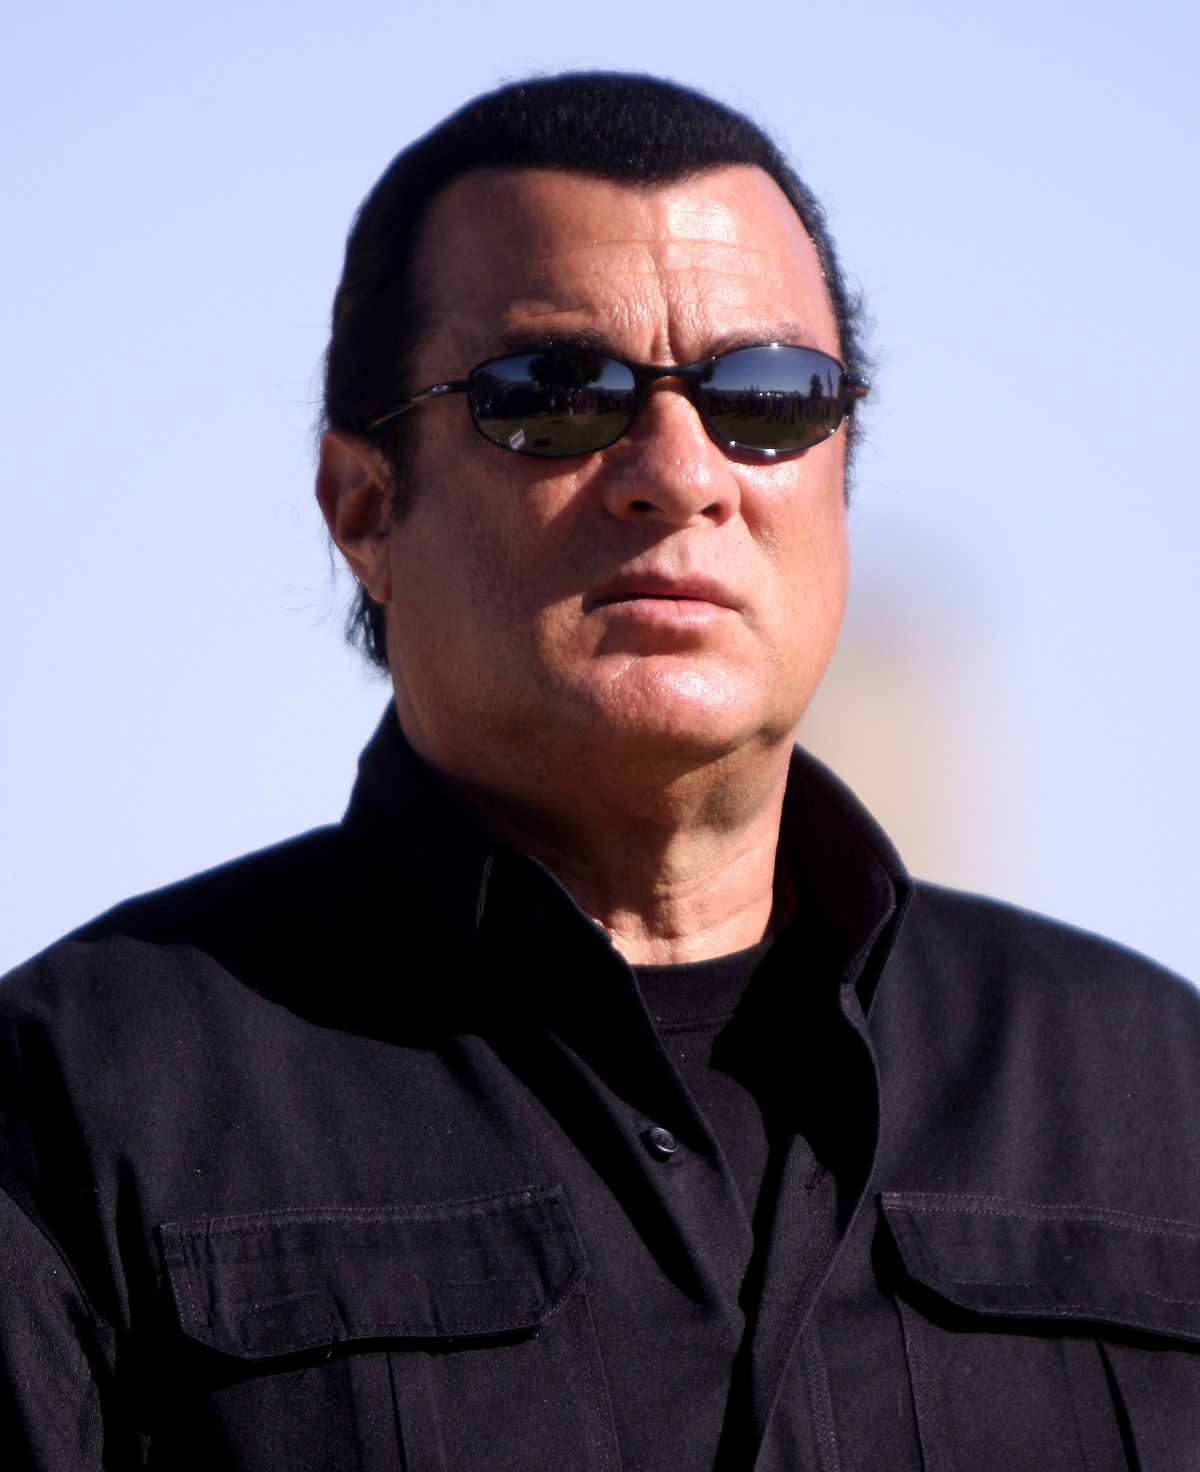 1200px-Steven_Seagal_by_Gage_Skidmore